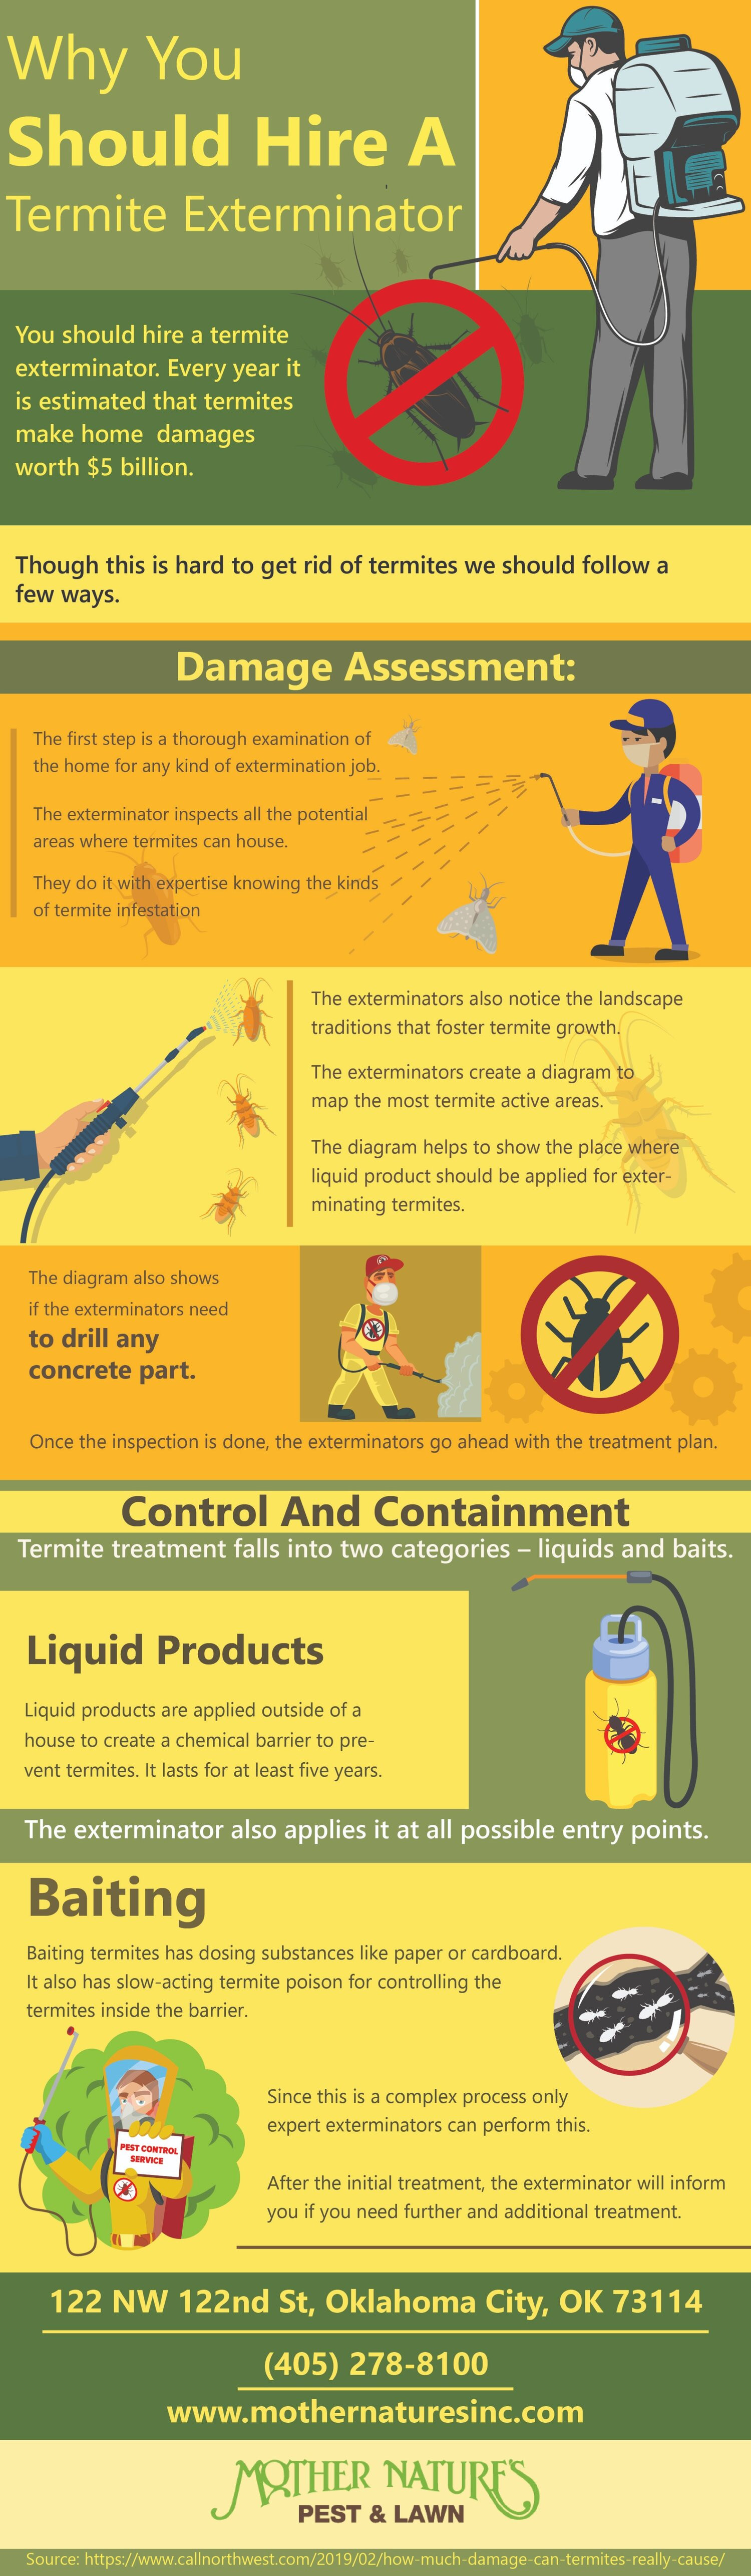 Why Should Hire A Termite Exterminator Infographic